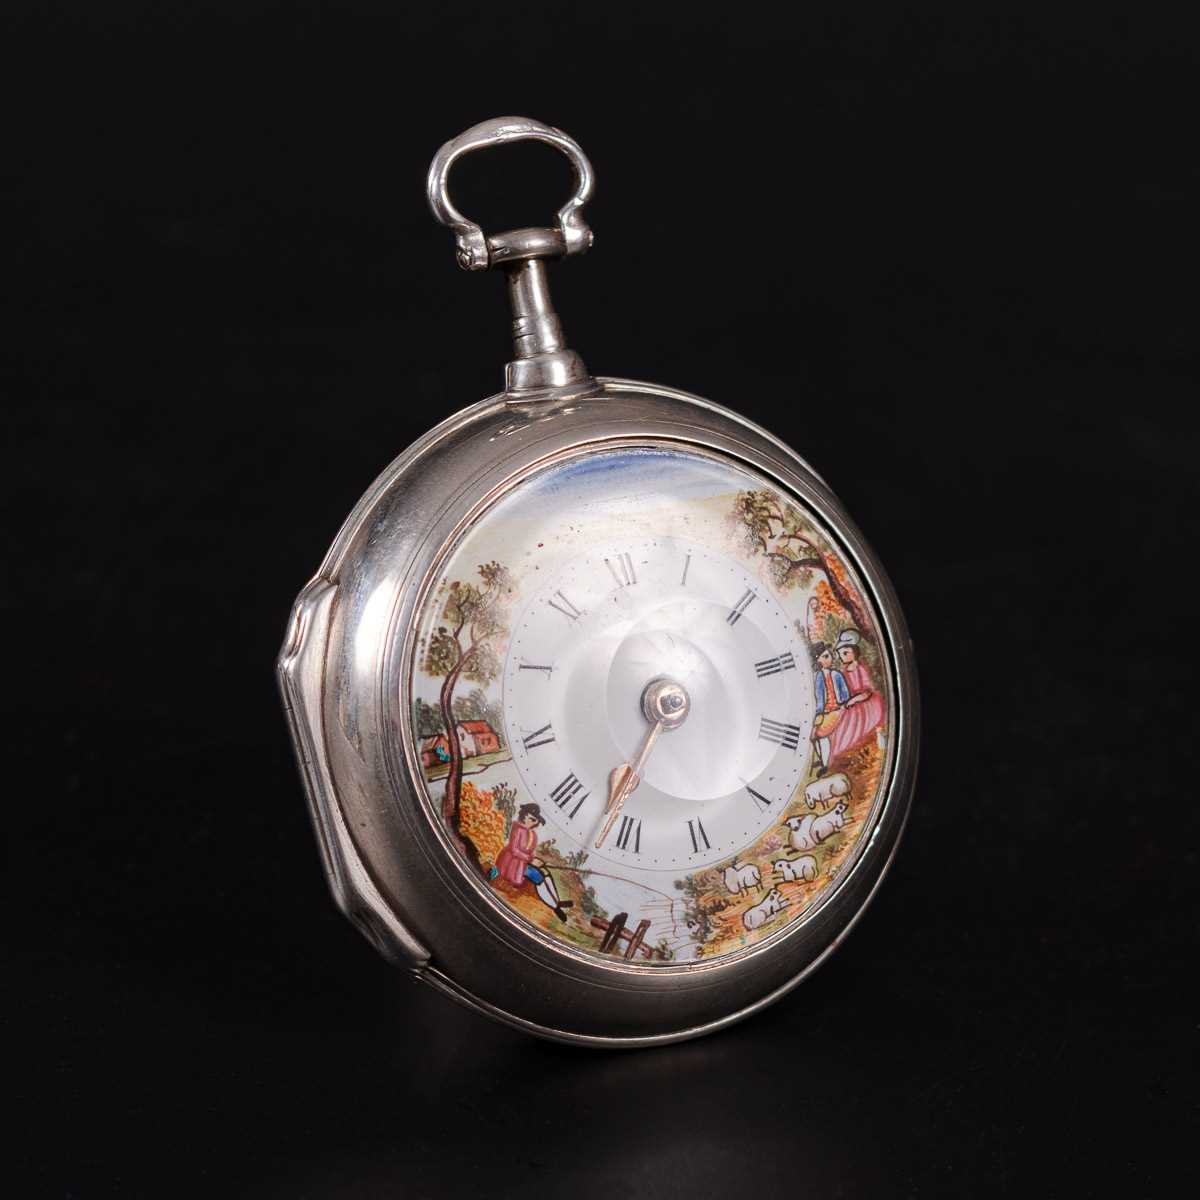 Lot 201-A silver pair case pocket watch with coloured enamel dial.